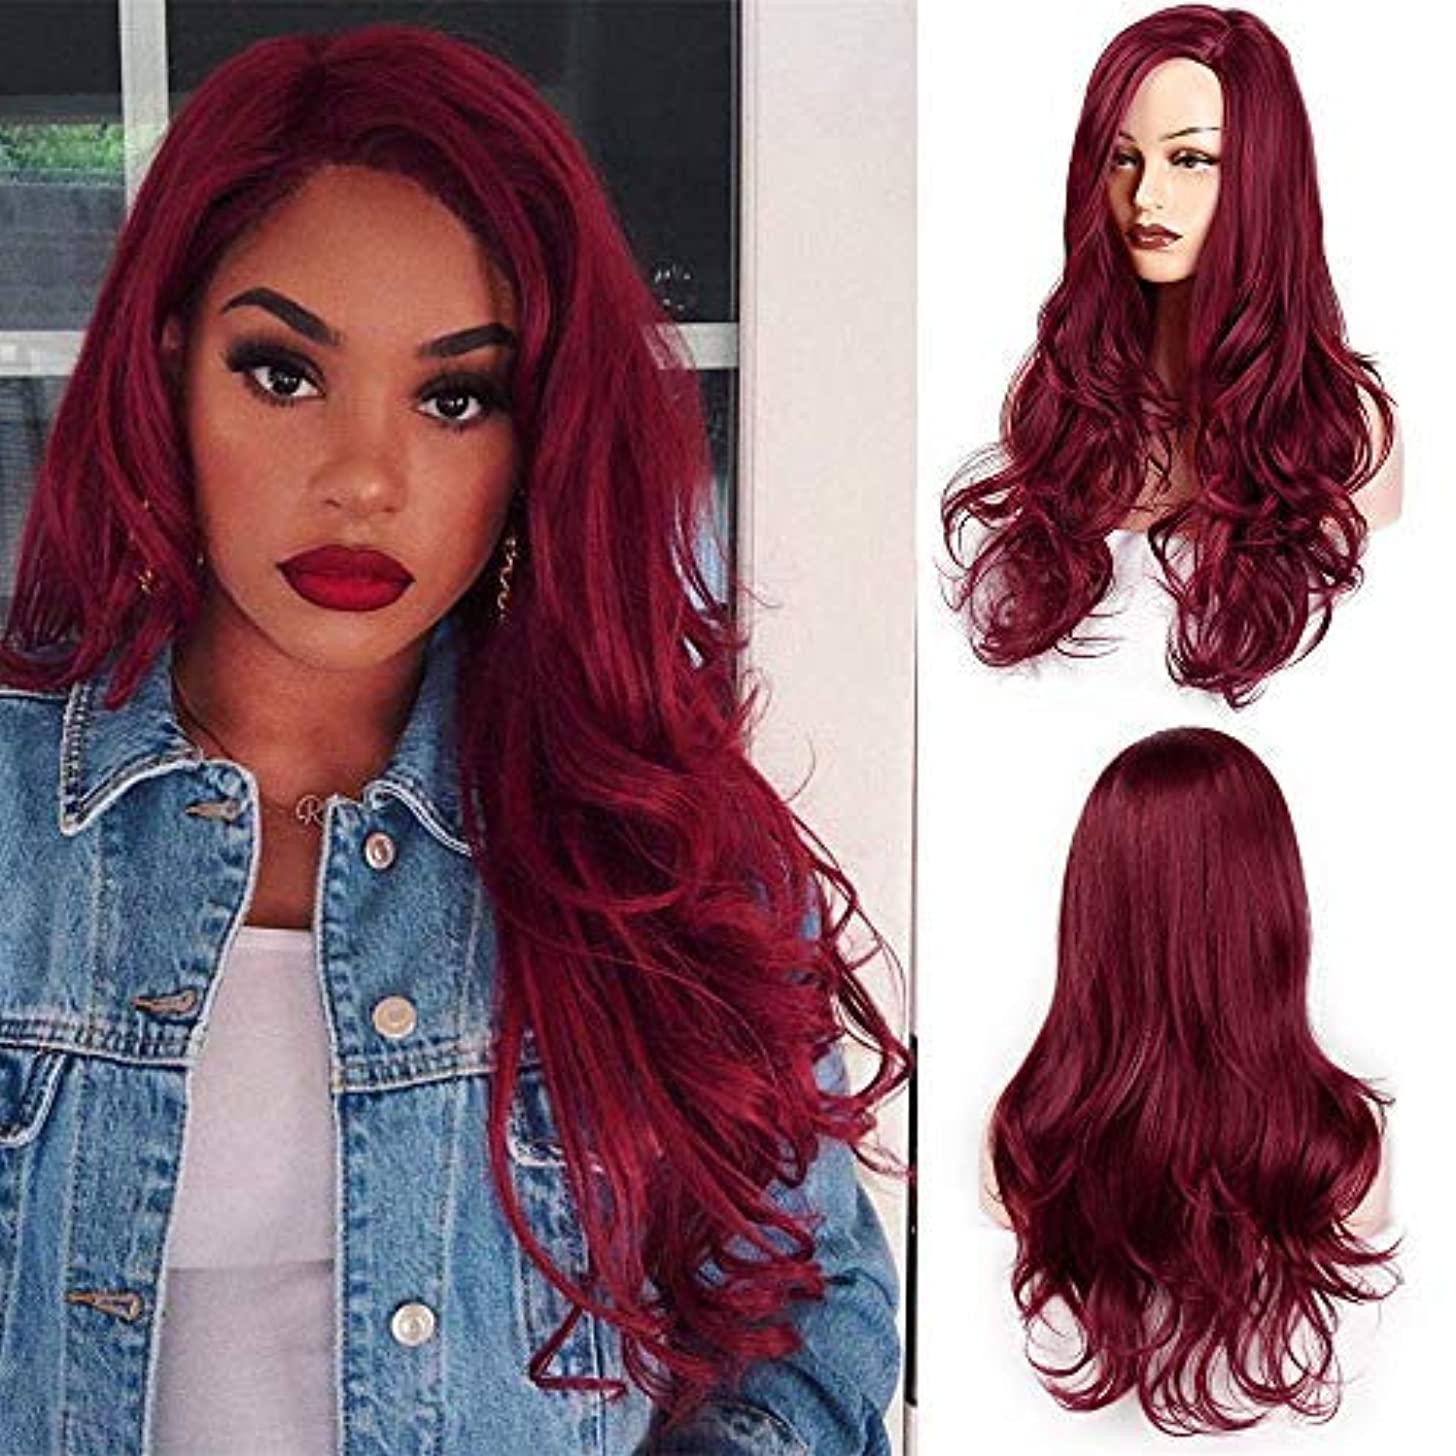 AISI HAIR Auburn Wig Cosplay Long Wavy Red Wig for Women Side Part Heat Resistant Wig Natural Looking Fiber Wig